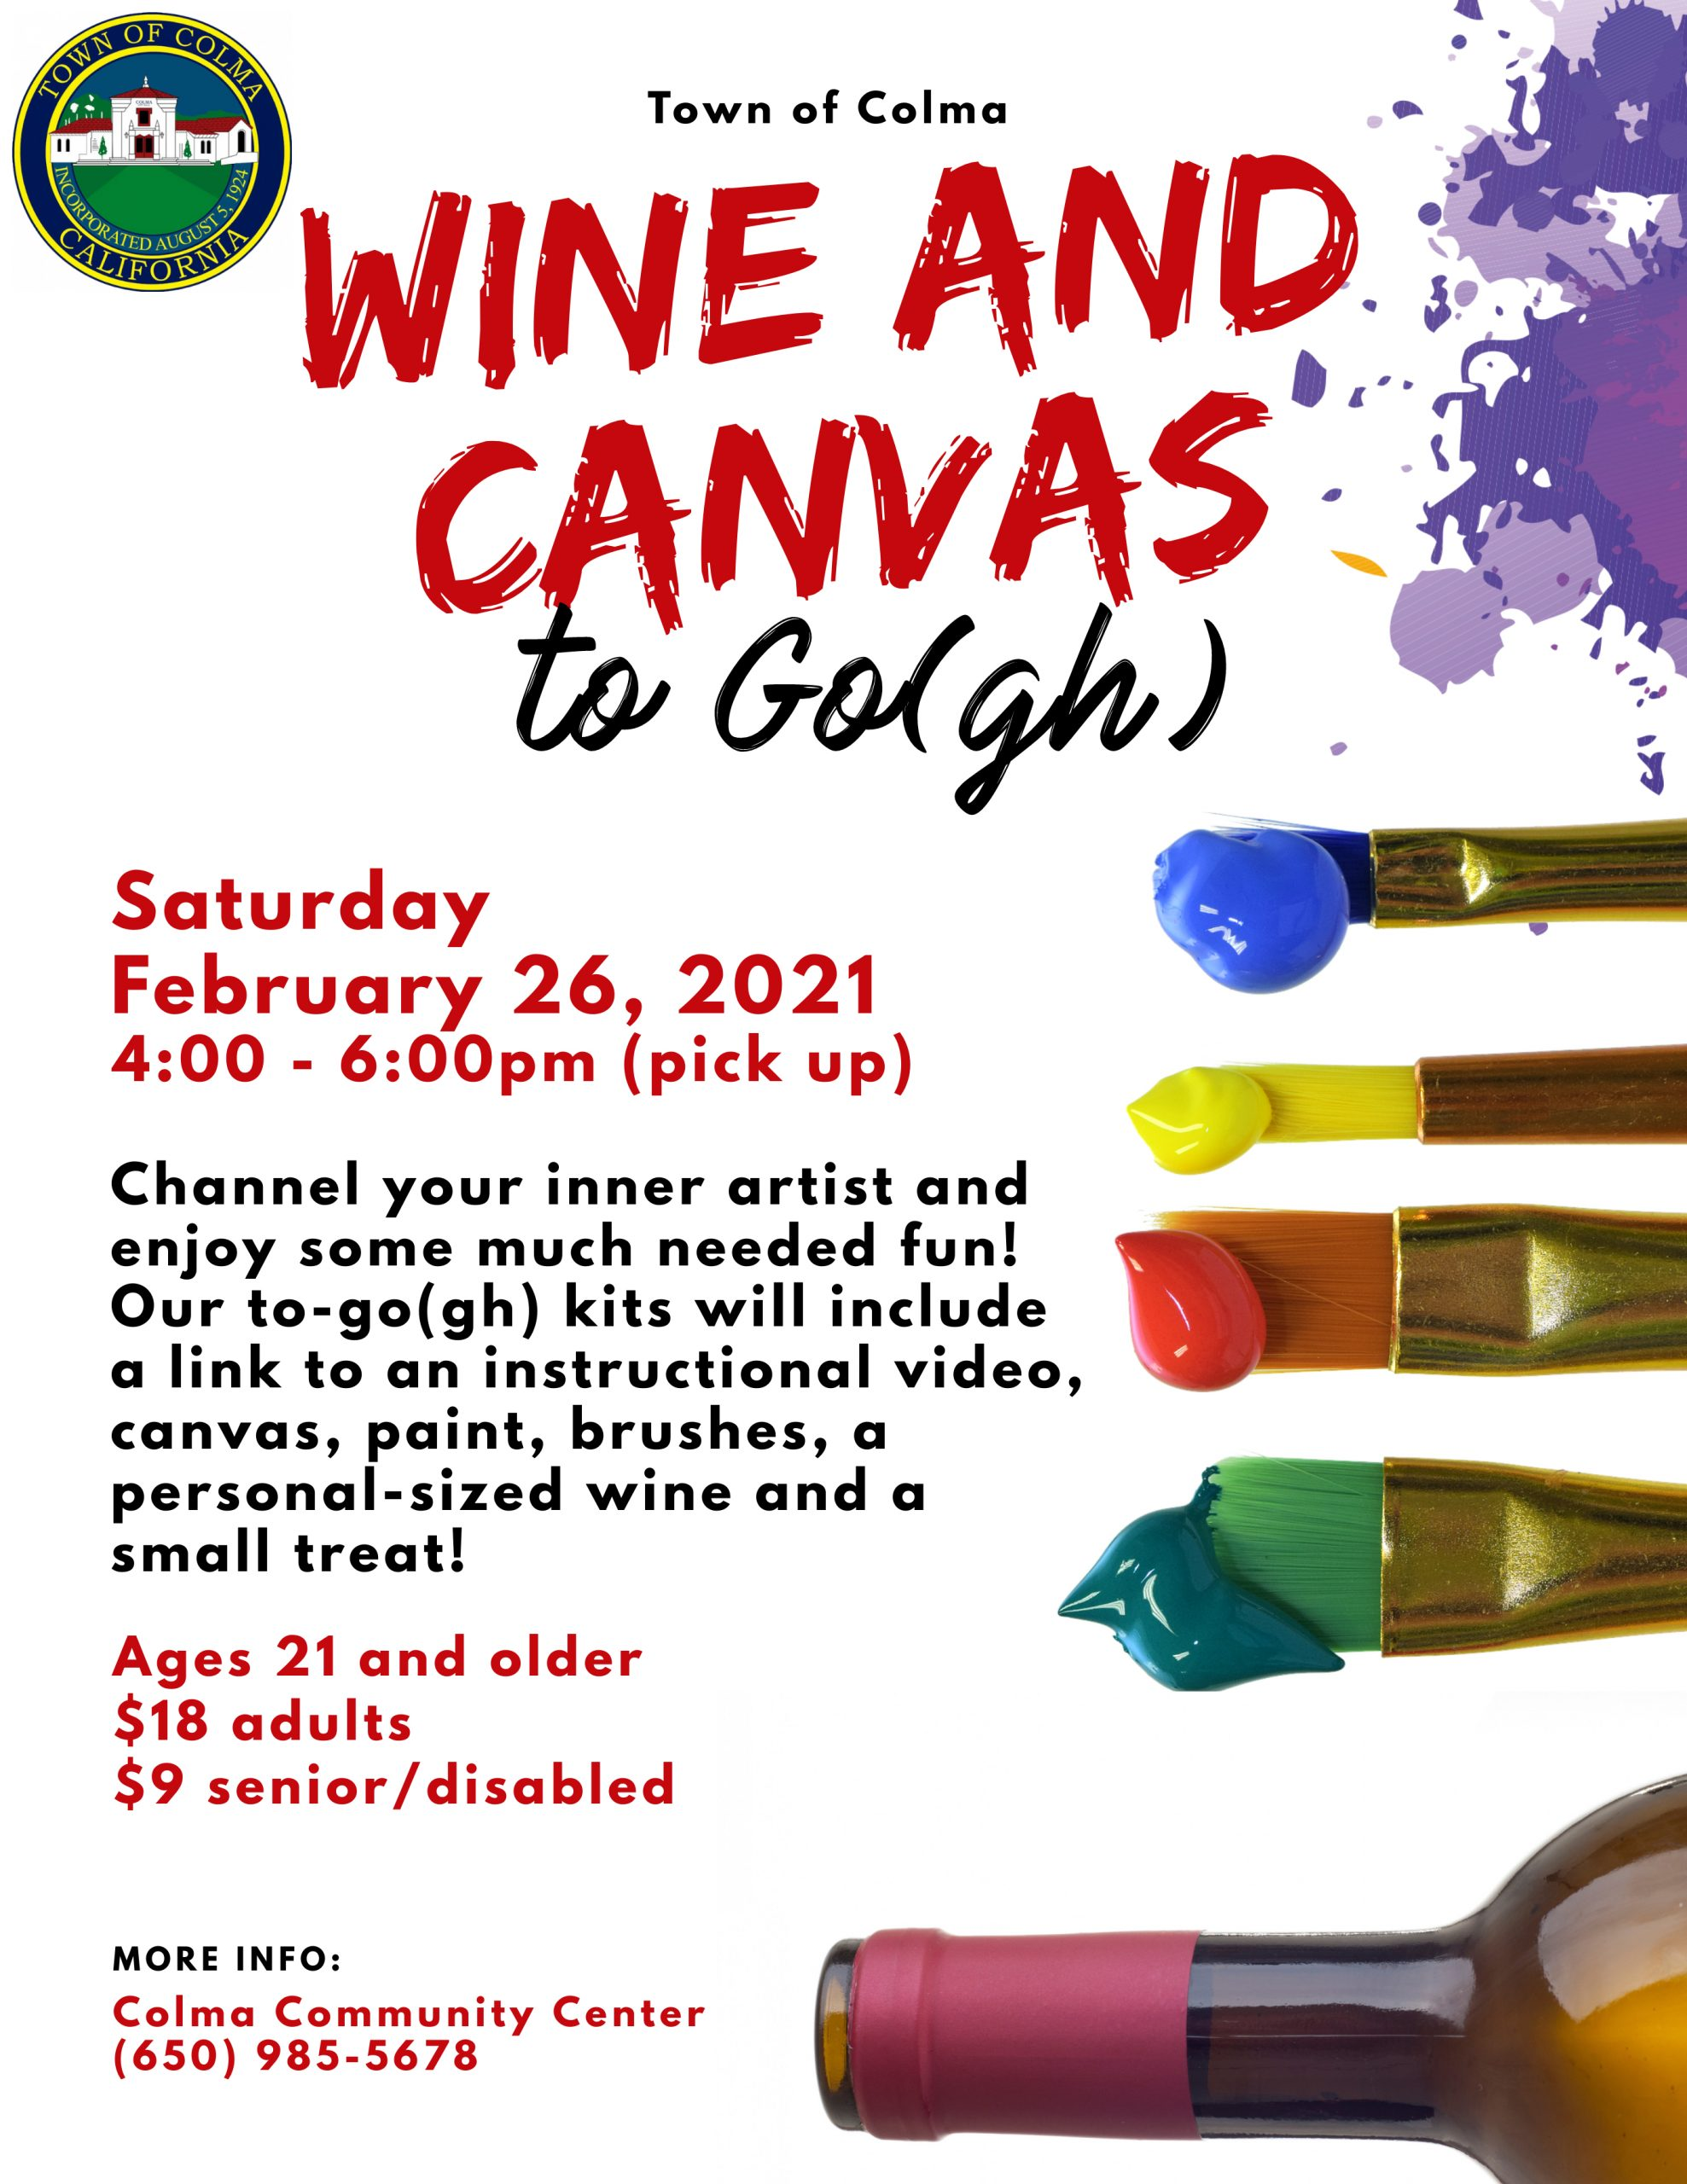 Wine and Canvas Flyer